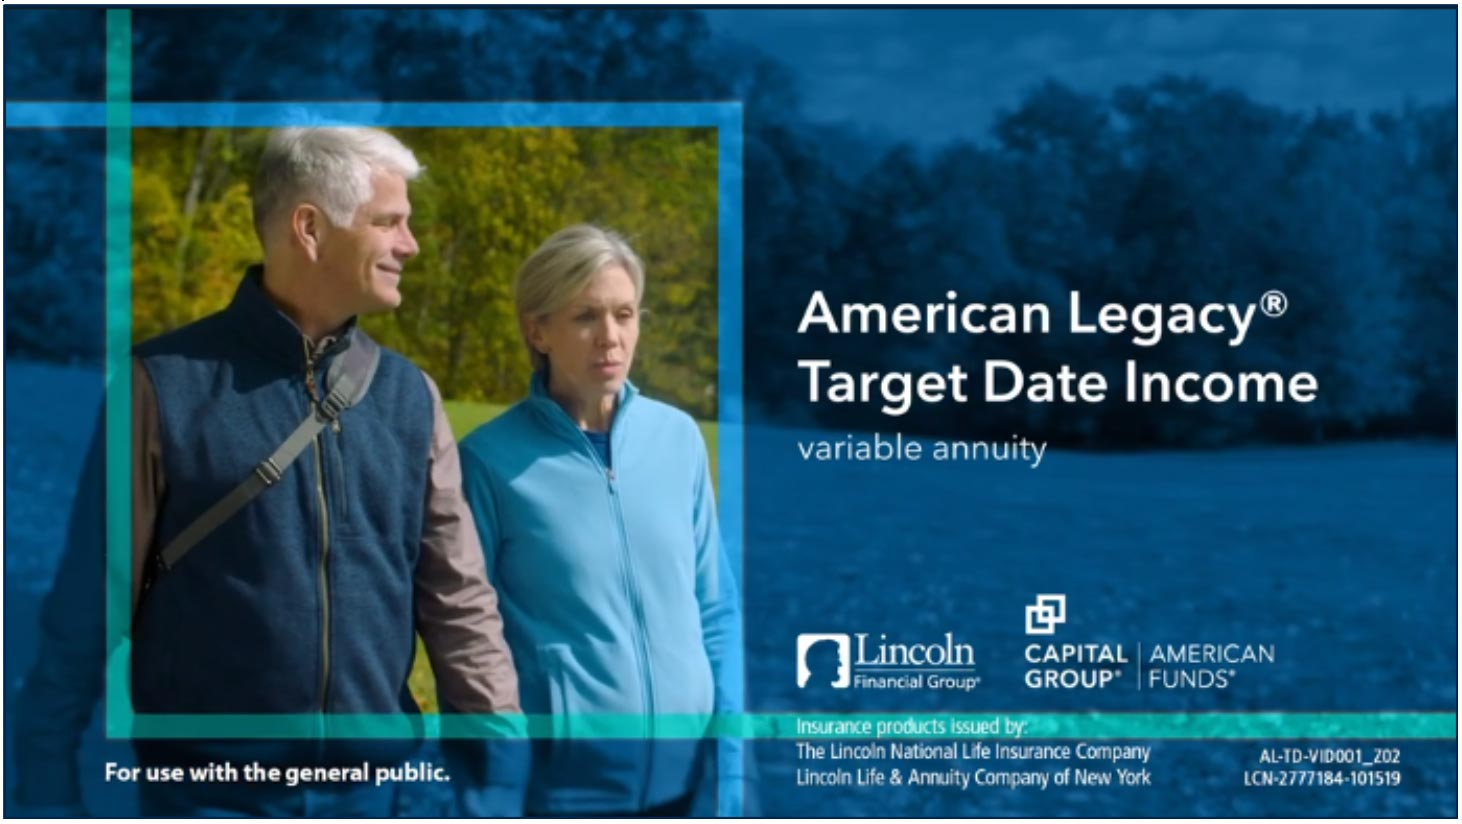 Lincoln Financial now offers target date income variable annuity.